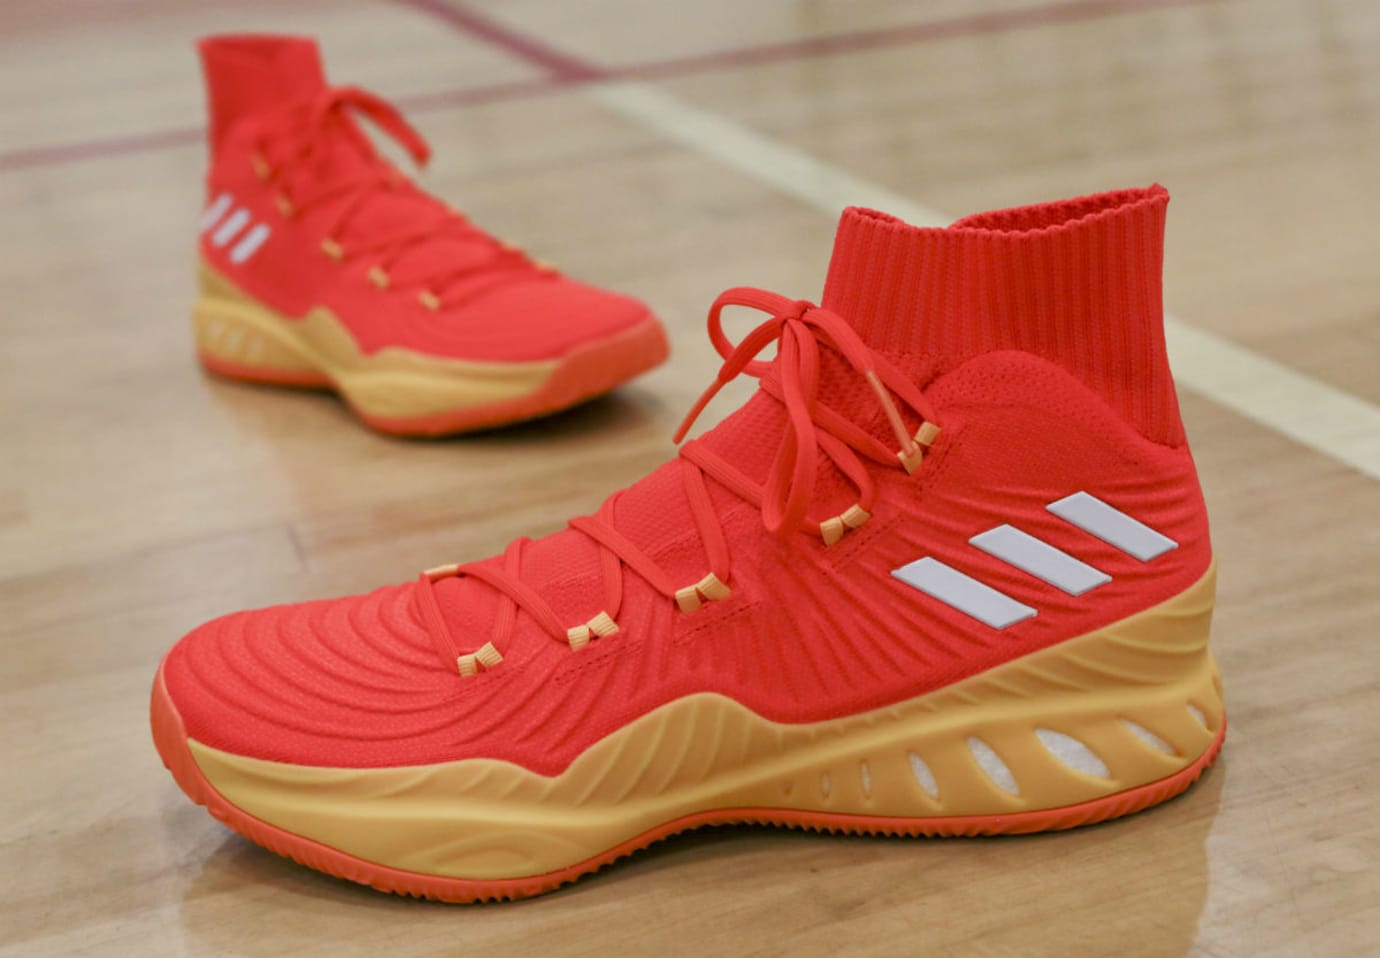 Candace Parker Adidas Crazy Explosive 17 All Star PE Left